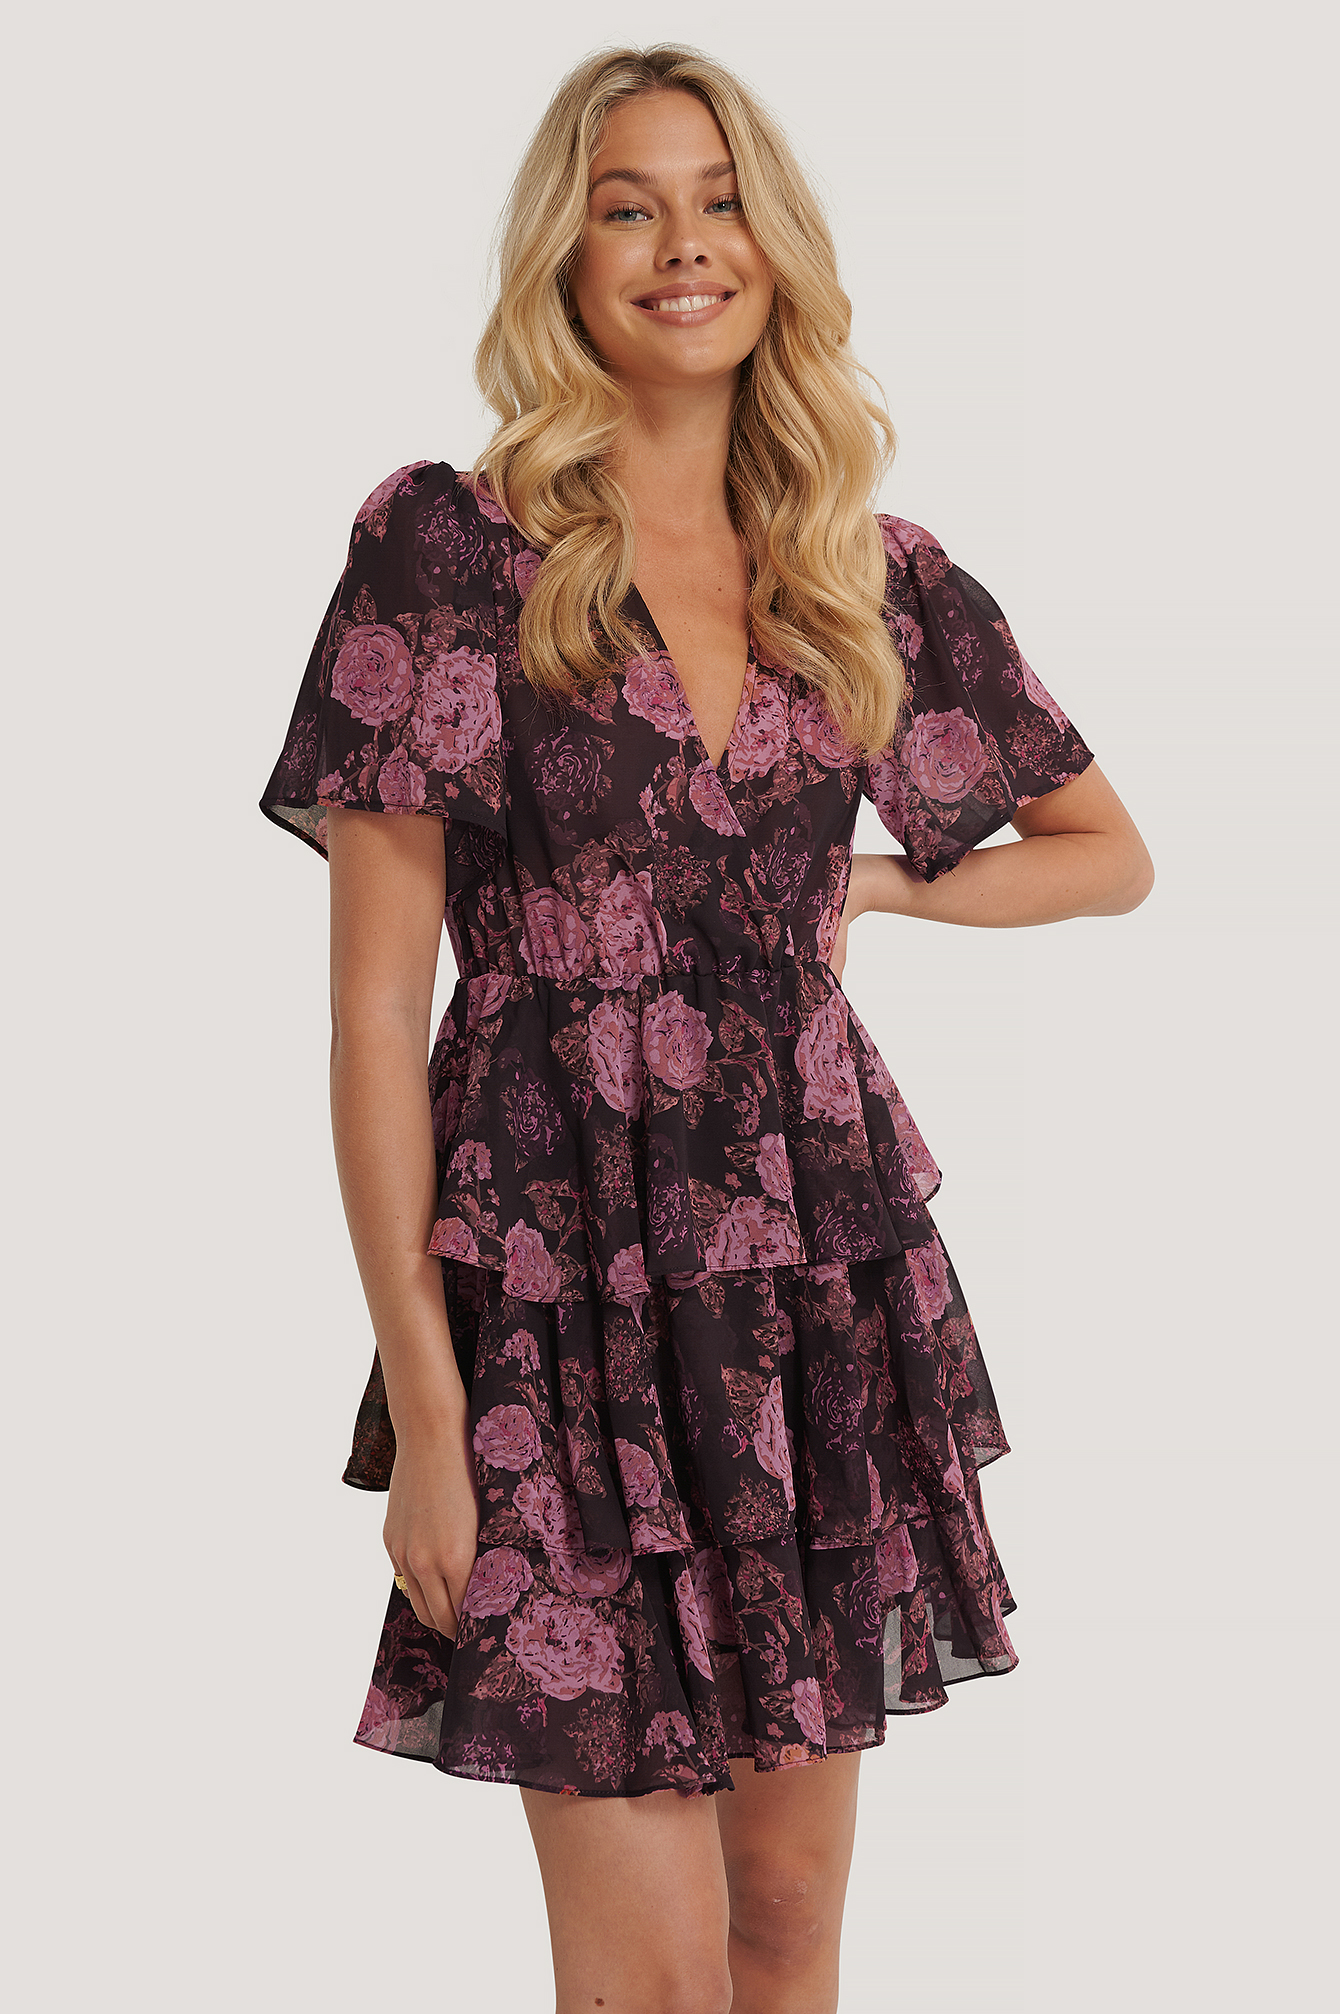 Brown/Pink Flowers Triple Layer Flounce Dress